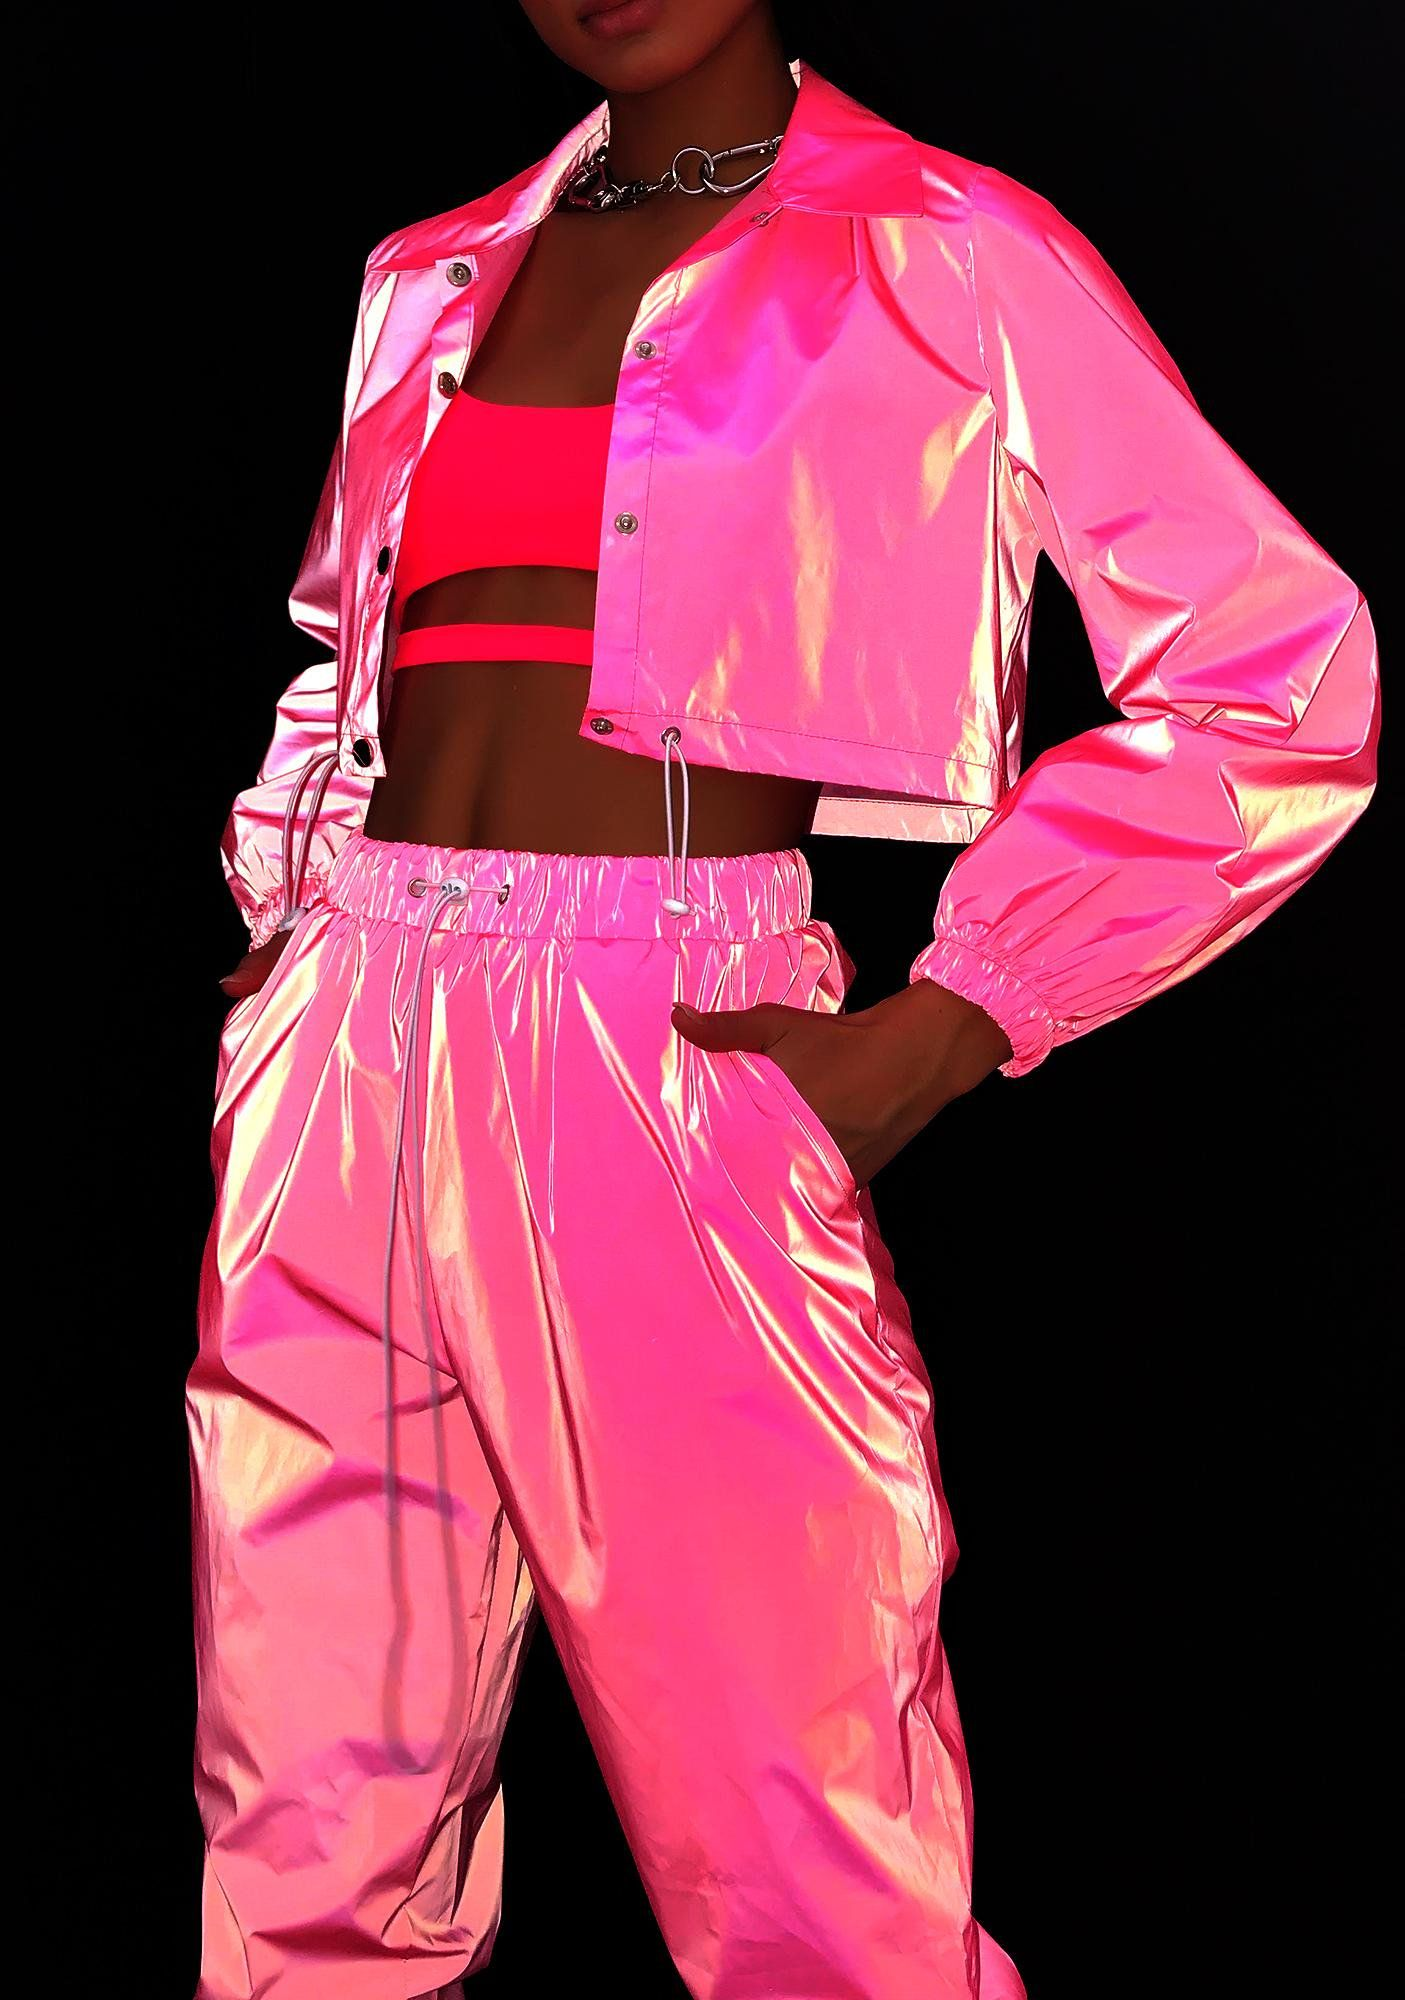 neon outfits imagebesswyoung on electric ⚡️  pink